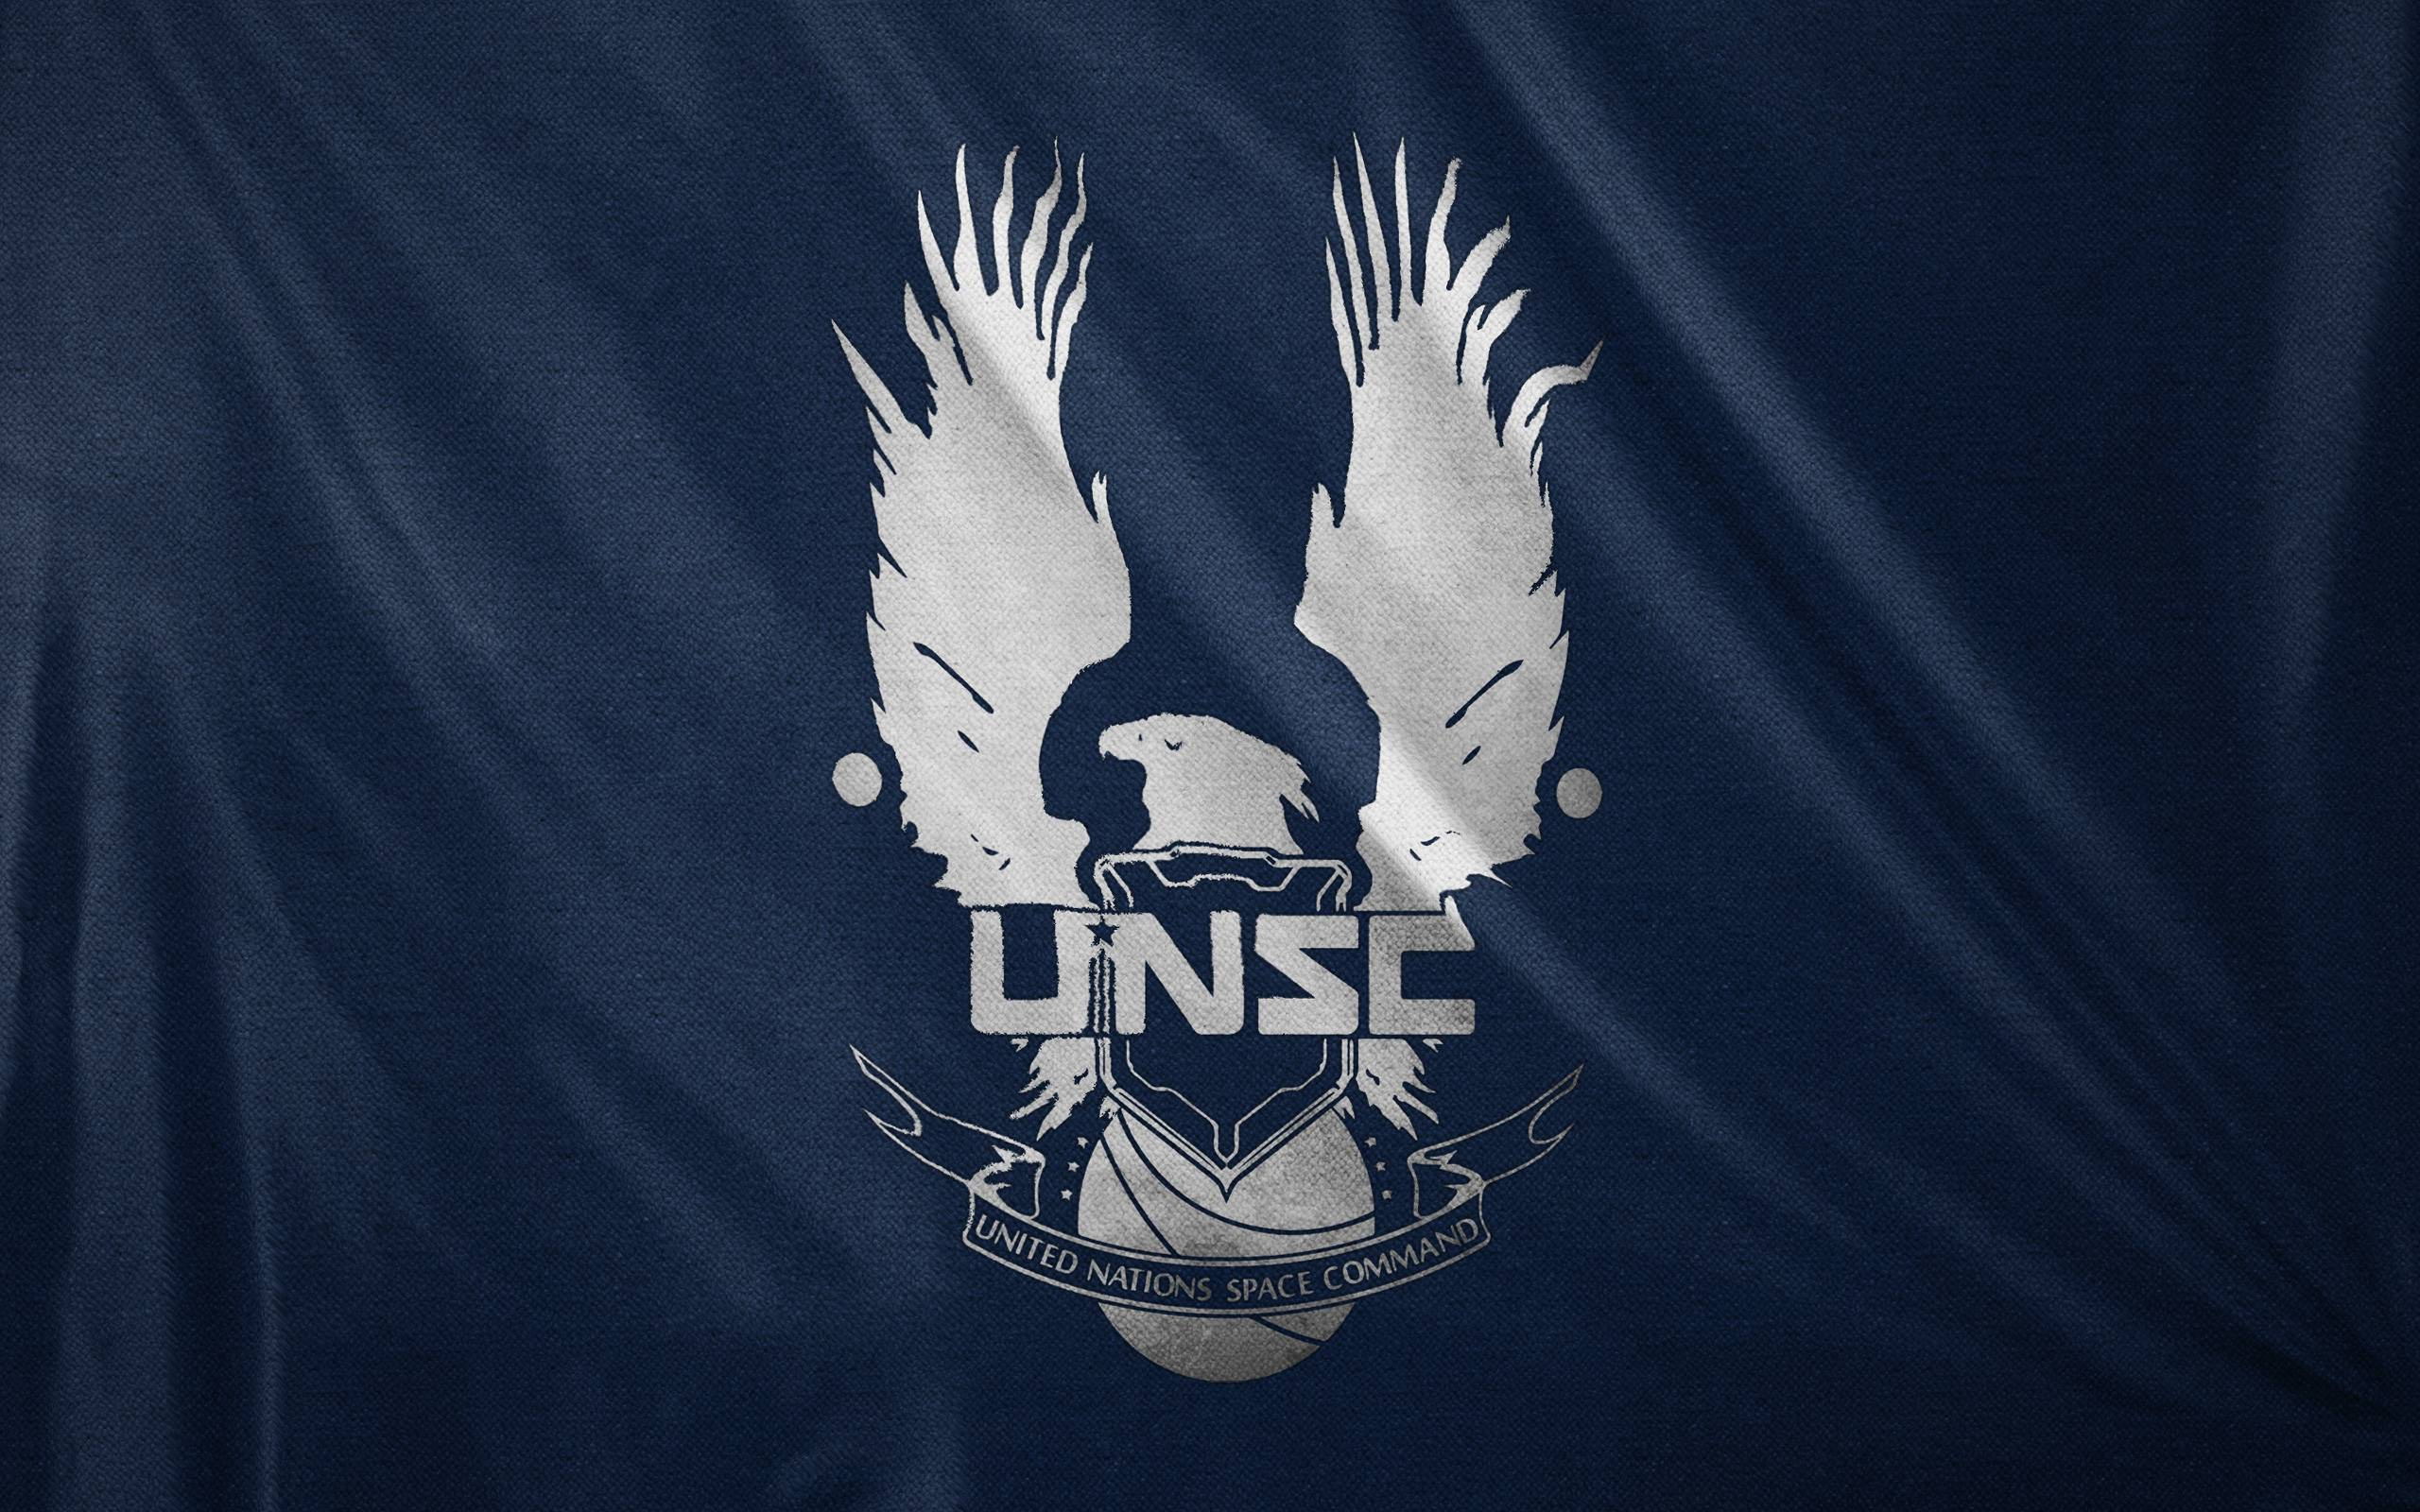 halo 4 unsc logo wallpaper